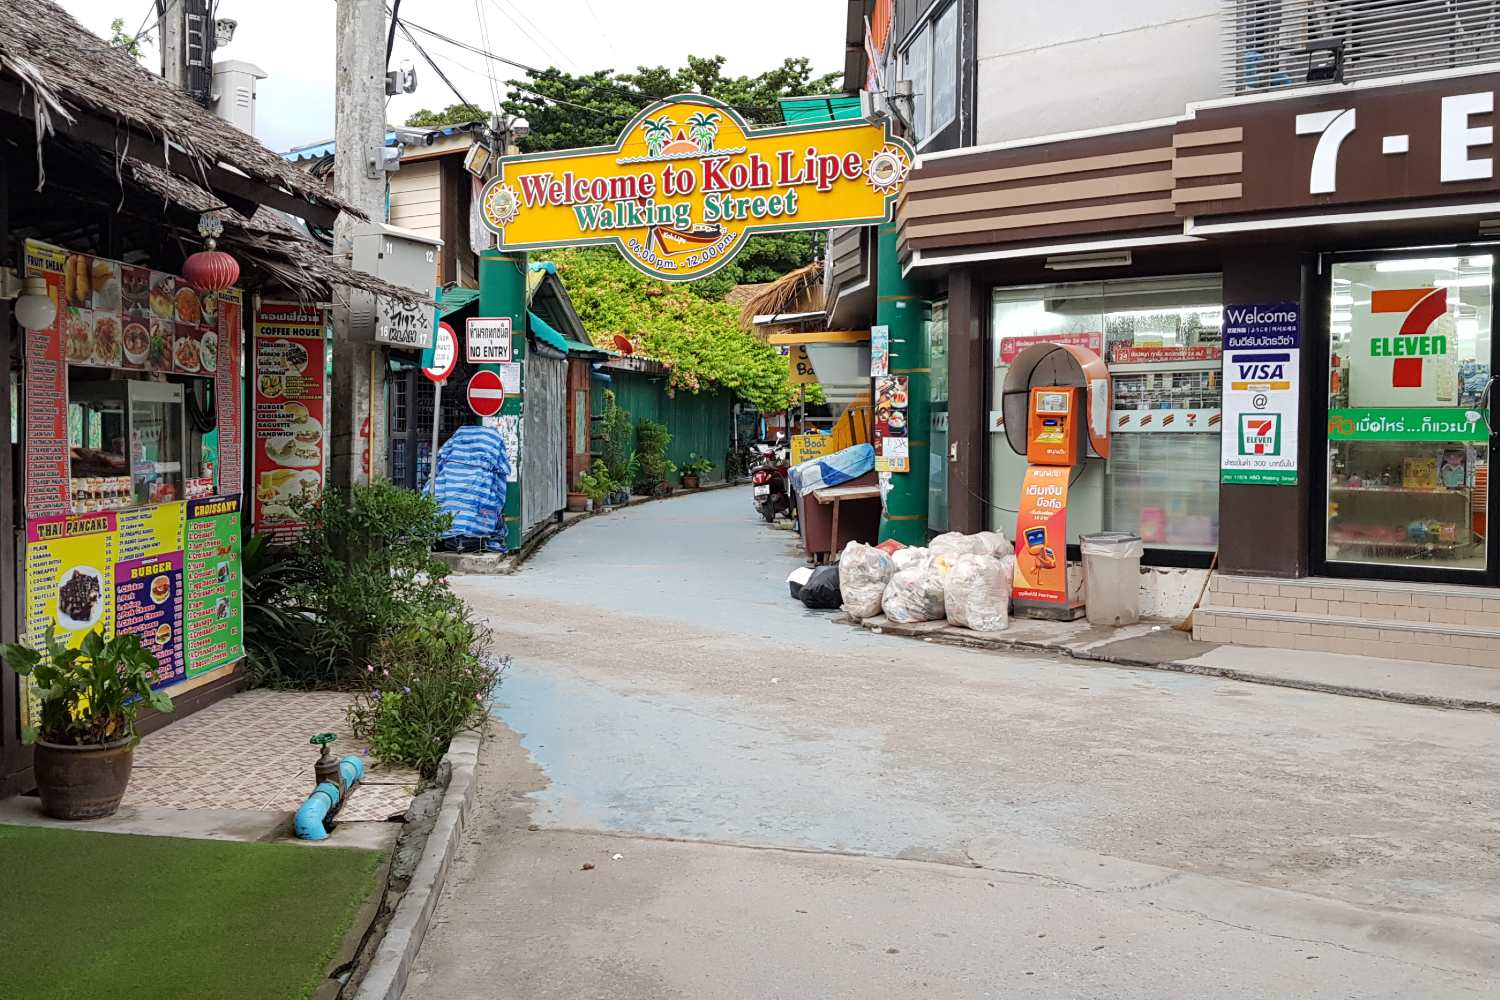 Koh Lipe Walking Street from Sunrise Beach in Koh Lipe